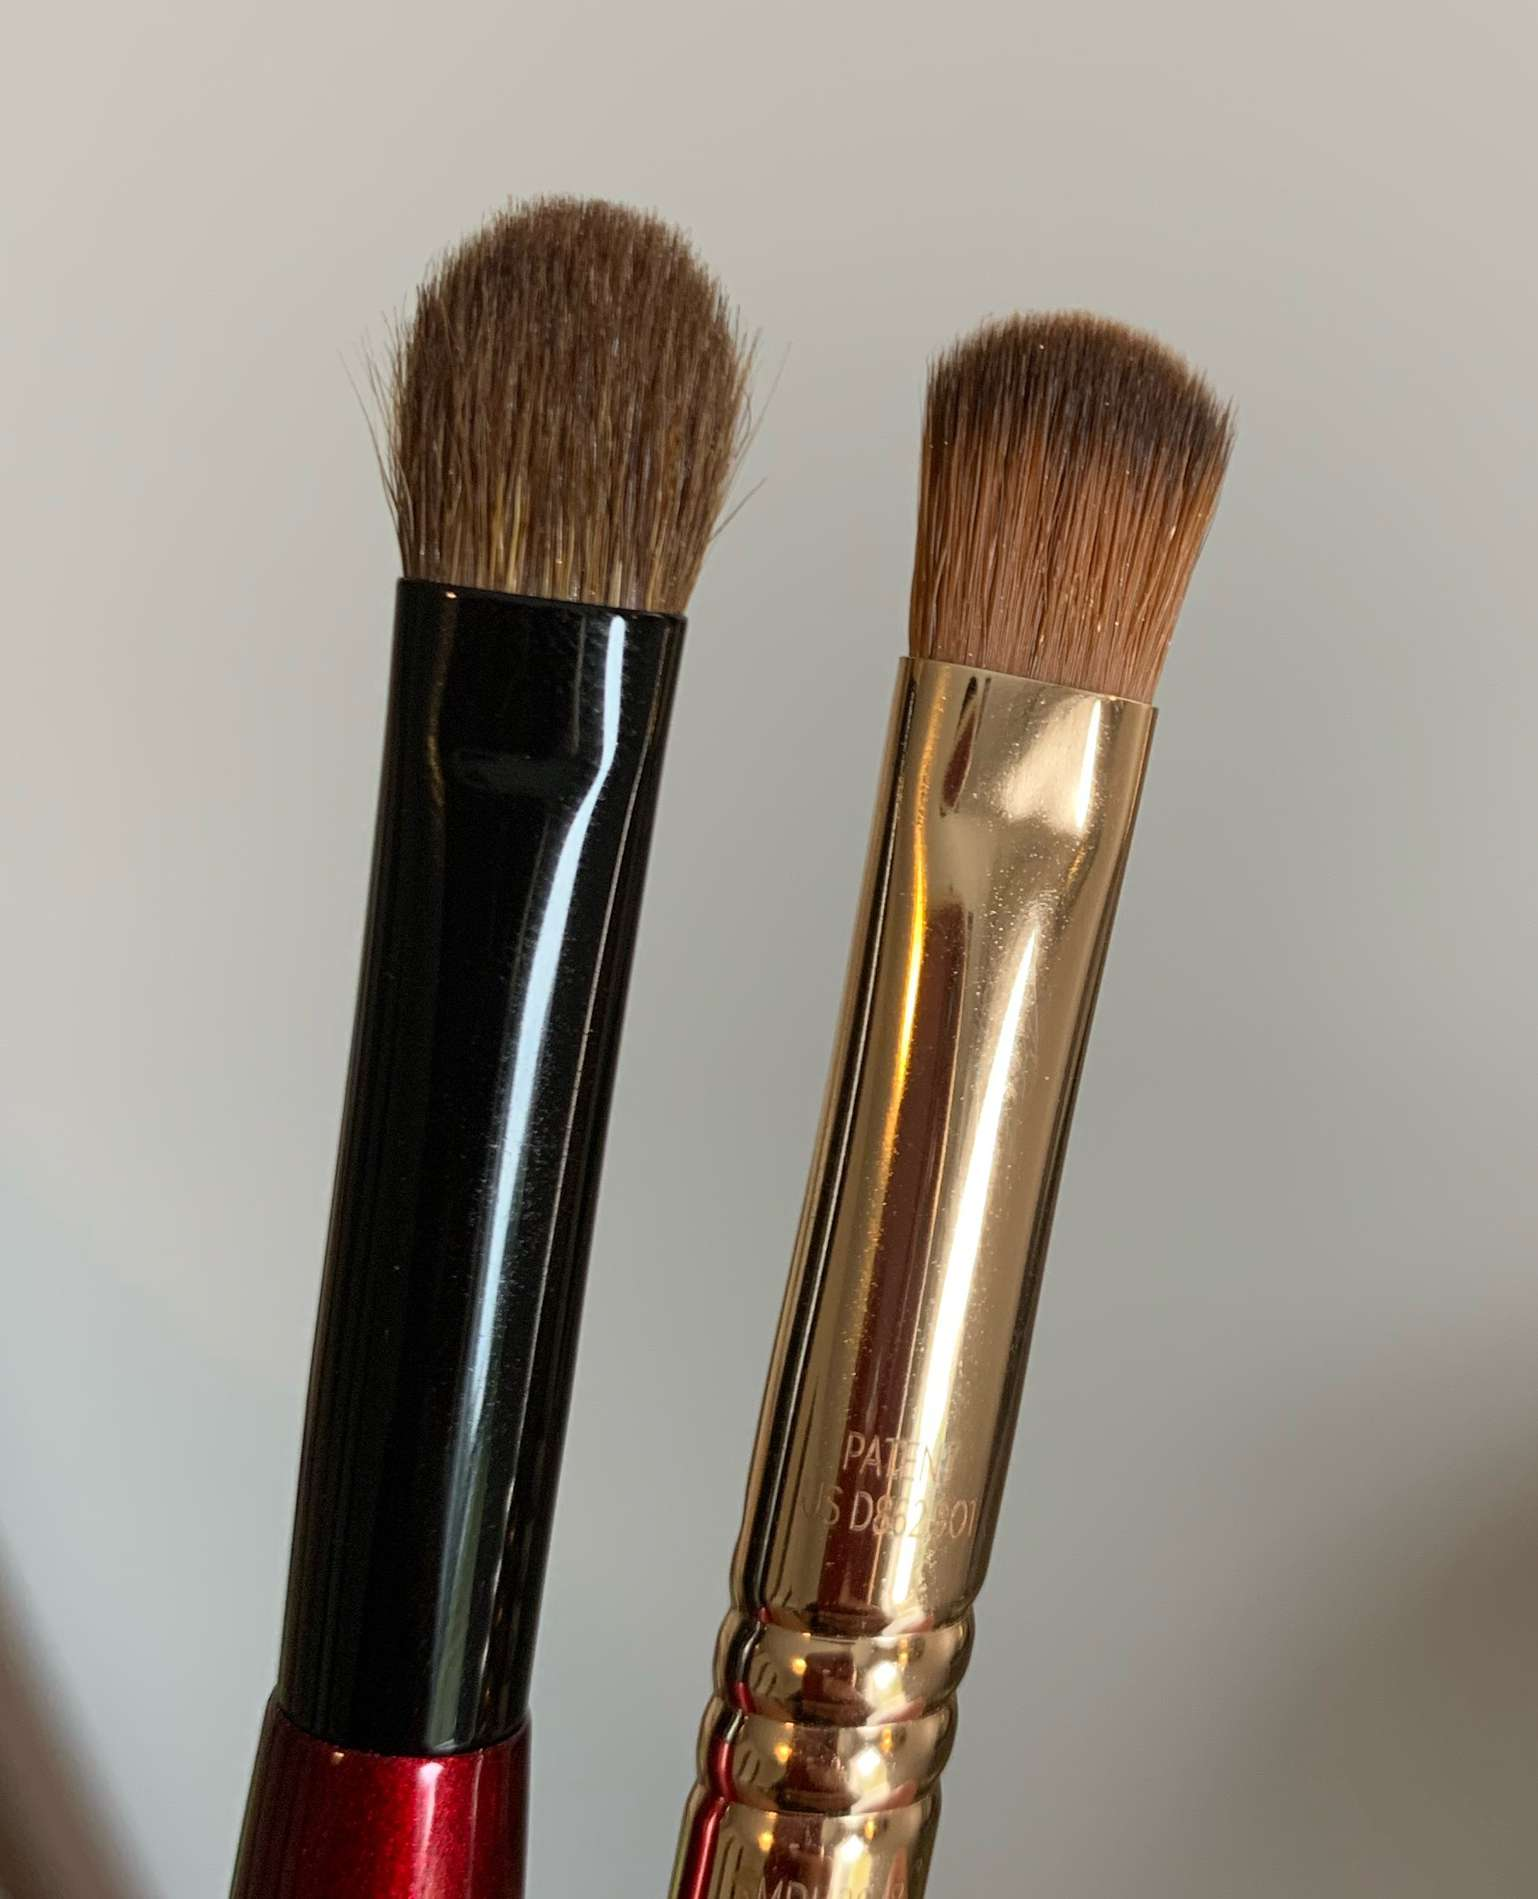 Sonia G Builder Pro Brush (left) and Sigma E54 (right) Review